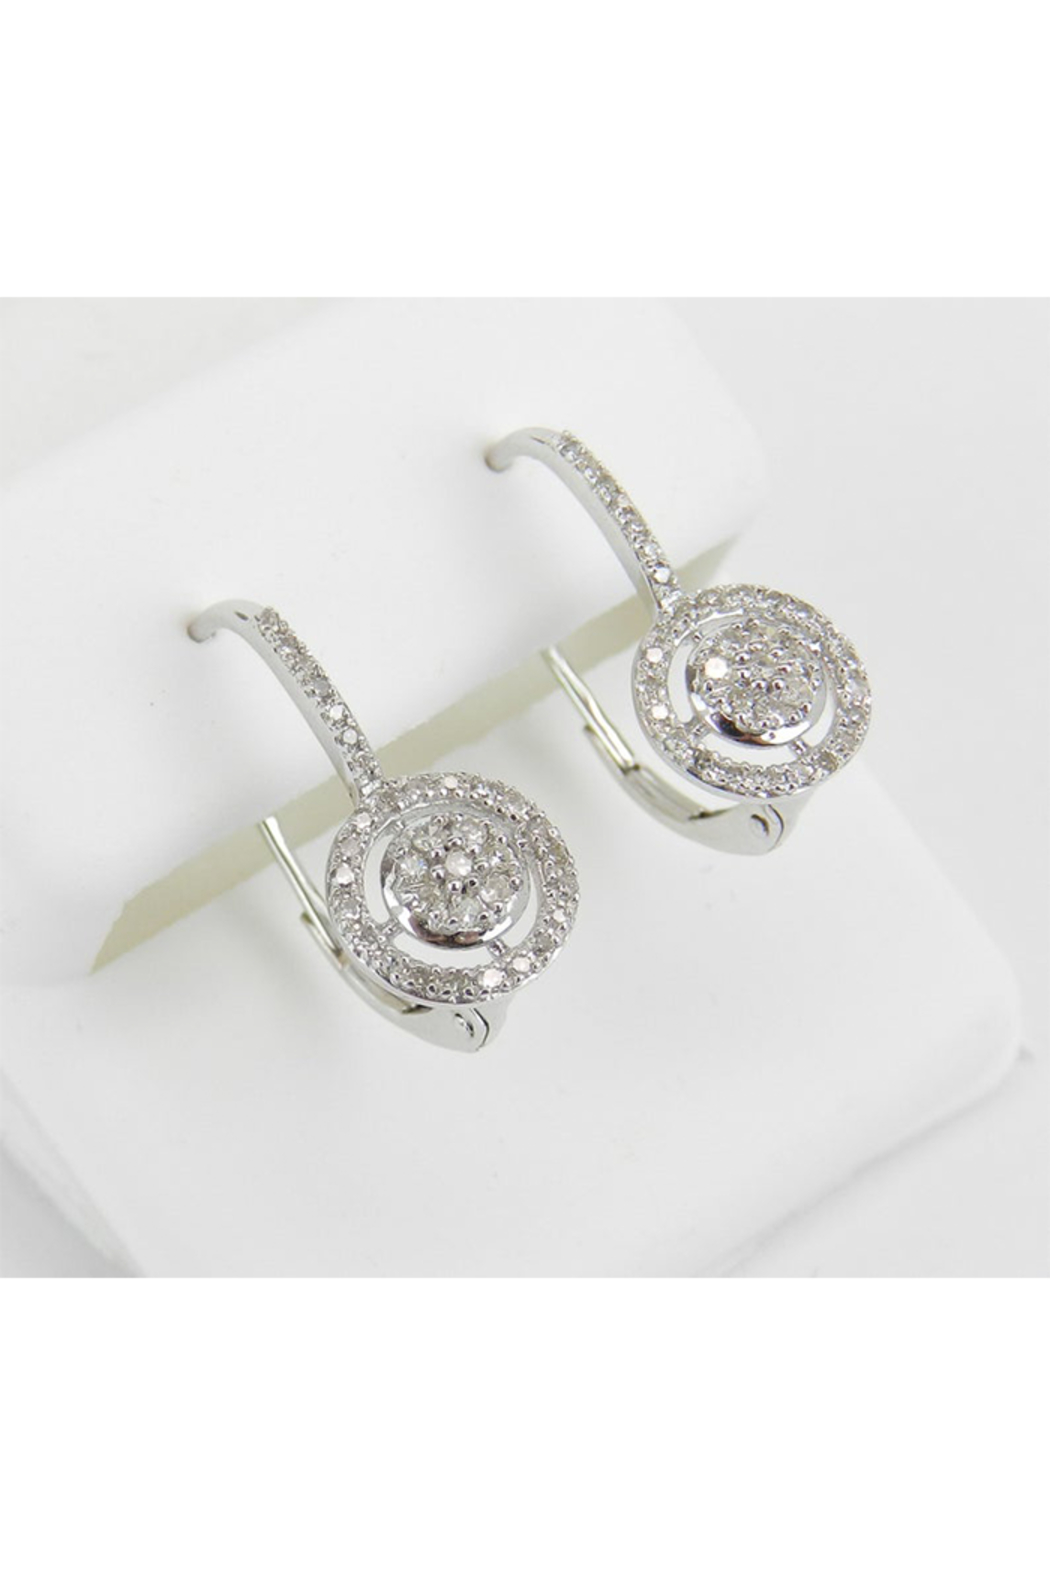 Margolin & Co White Gold Diamond Cluster Halo Drop Earrings Leverback Wedding Gift - Front Full Image